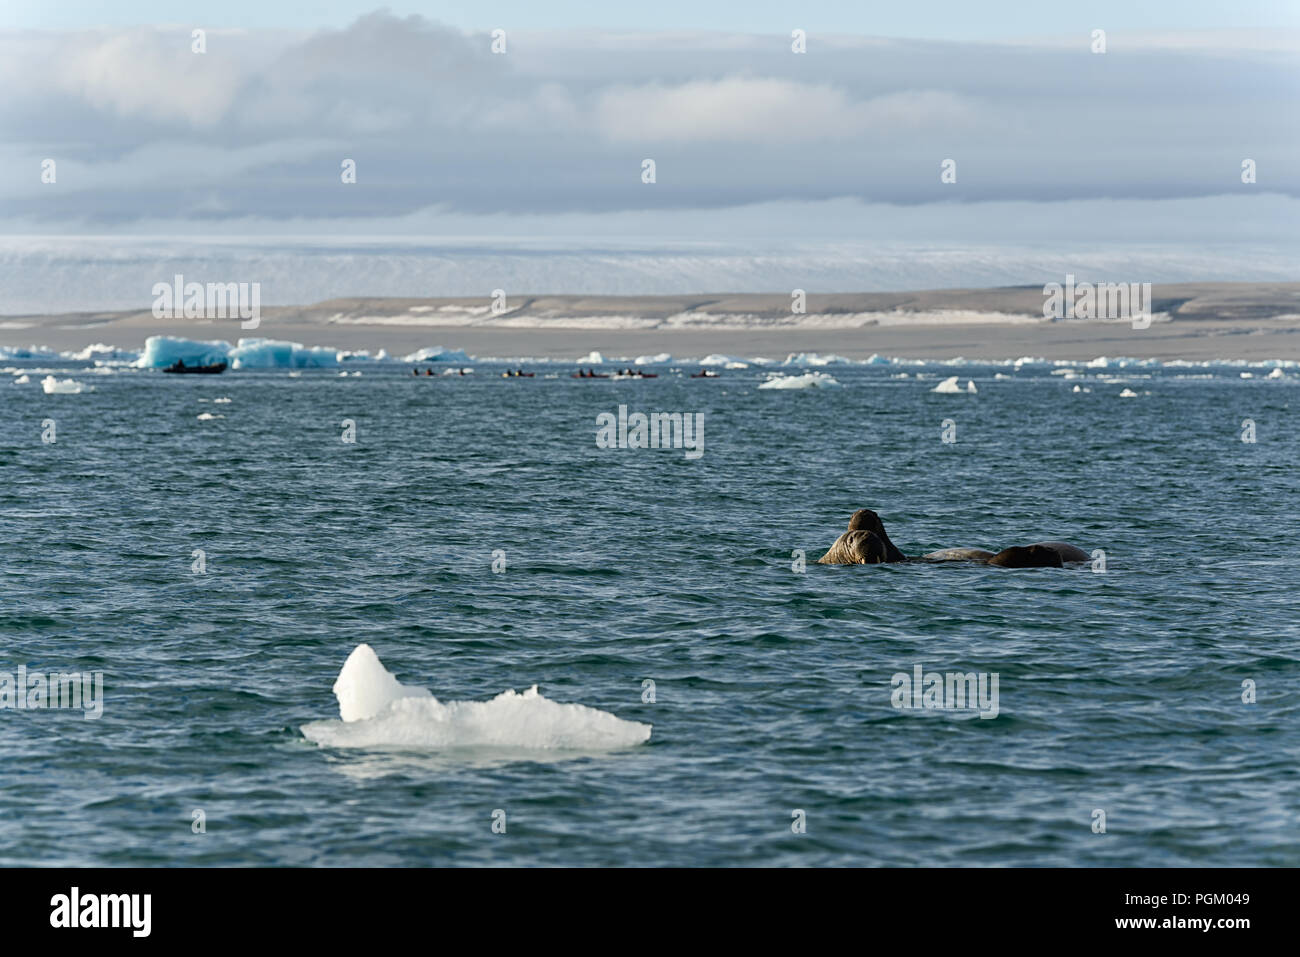 Group of walruses swimming in sea in front and tourists behind near Bråsvellbreen, Austfonna, Nordaustlandet, Svalbard Archipelago, Norway, 2017 - Stock Image